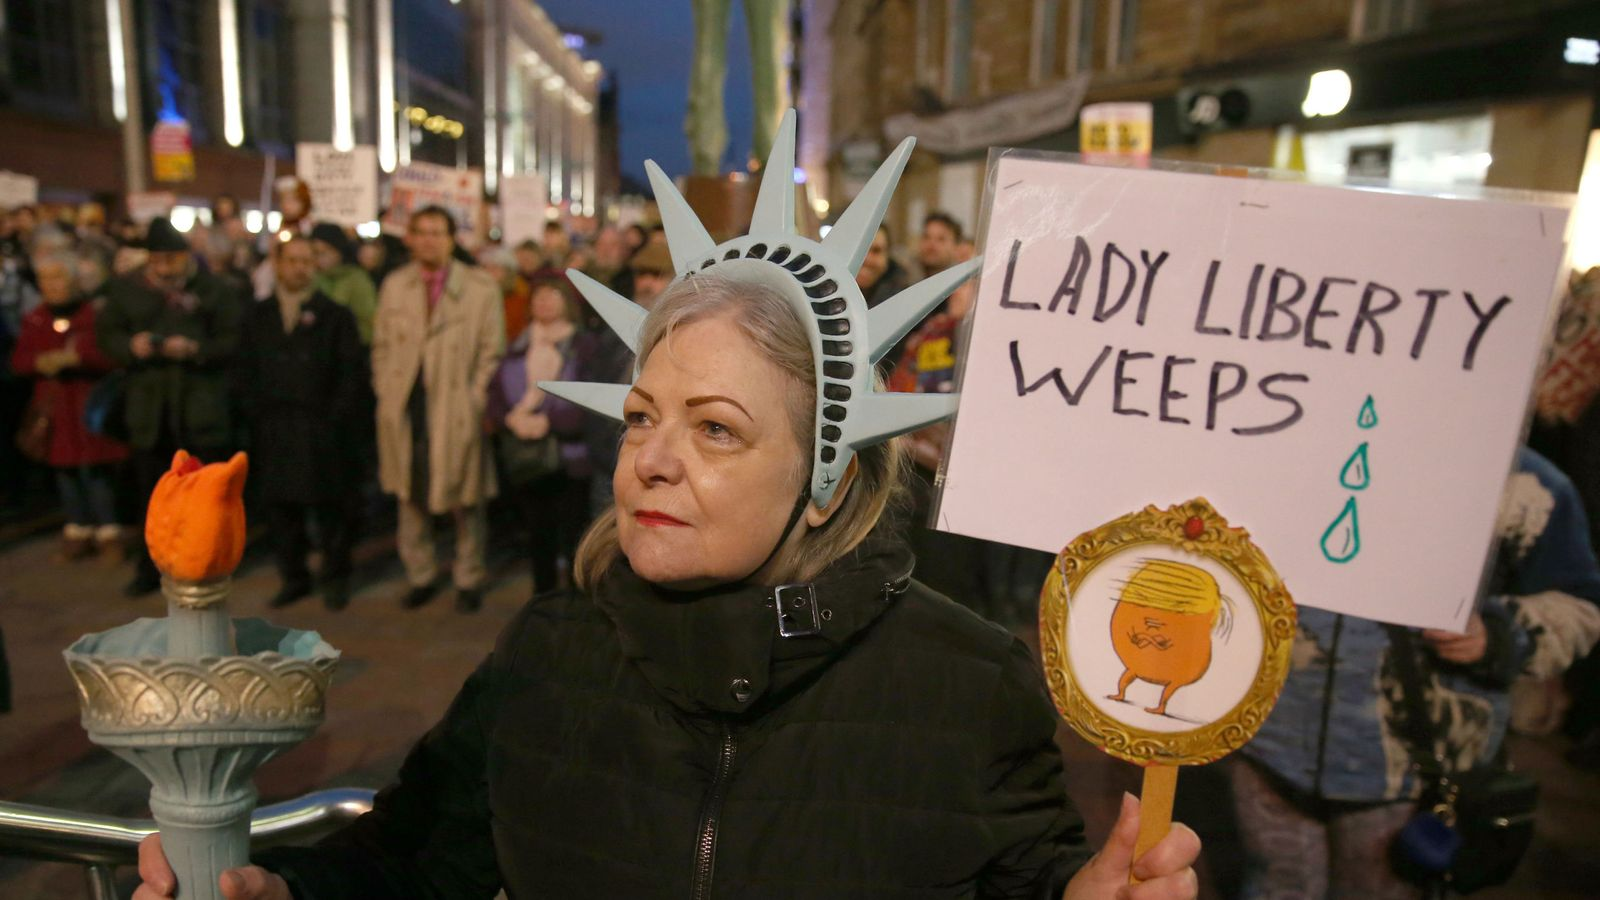 Hundreds gathered at protests in Glasgow